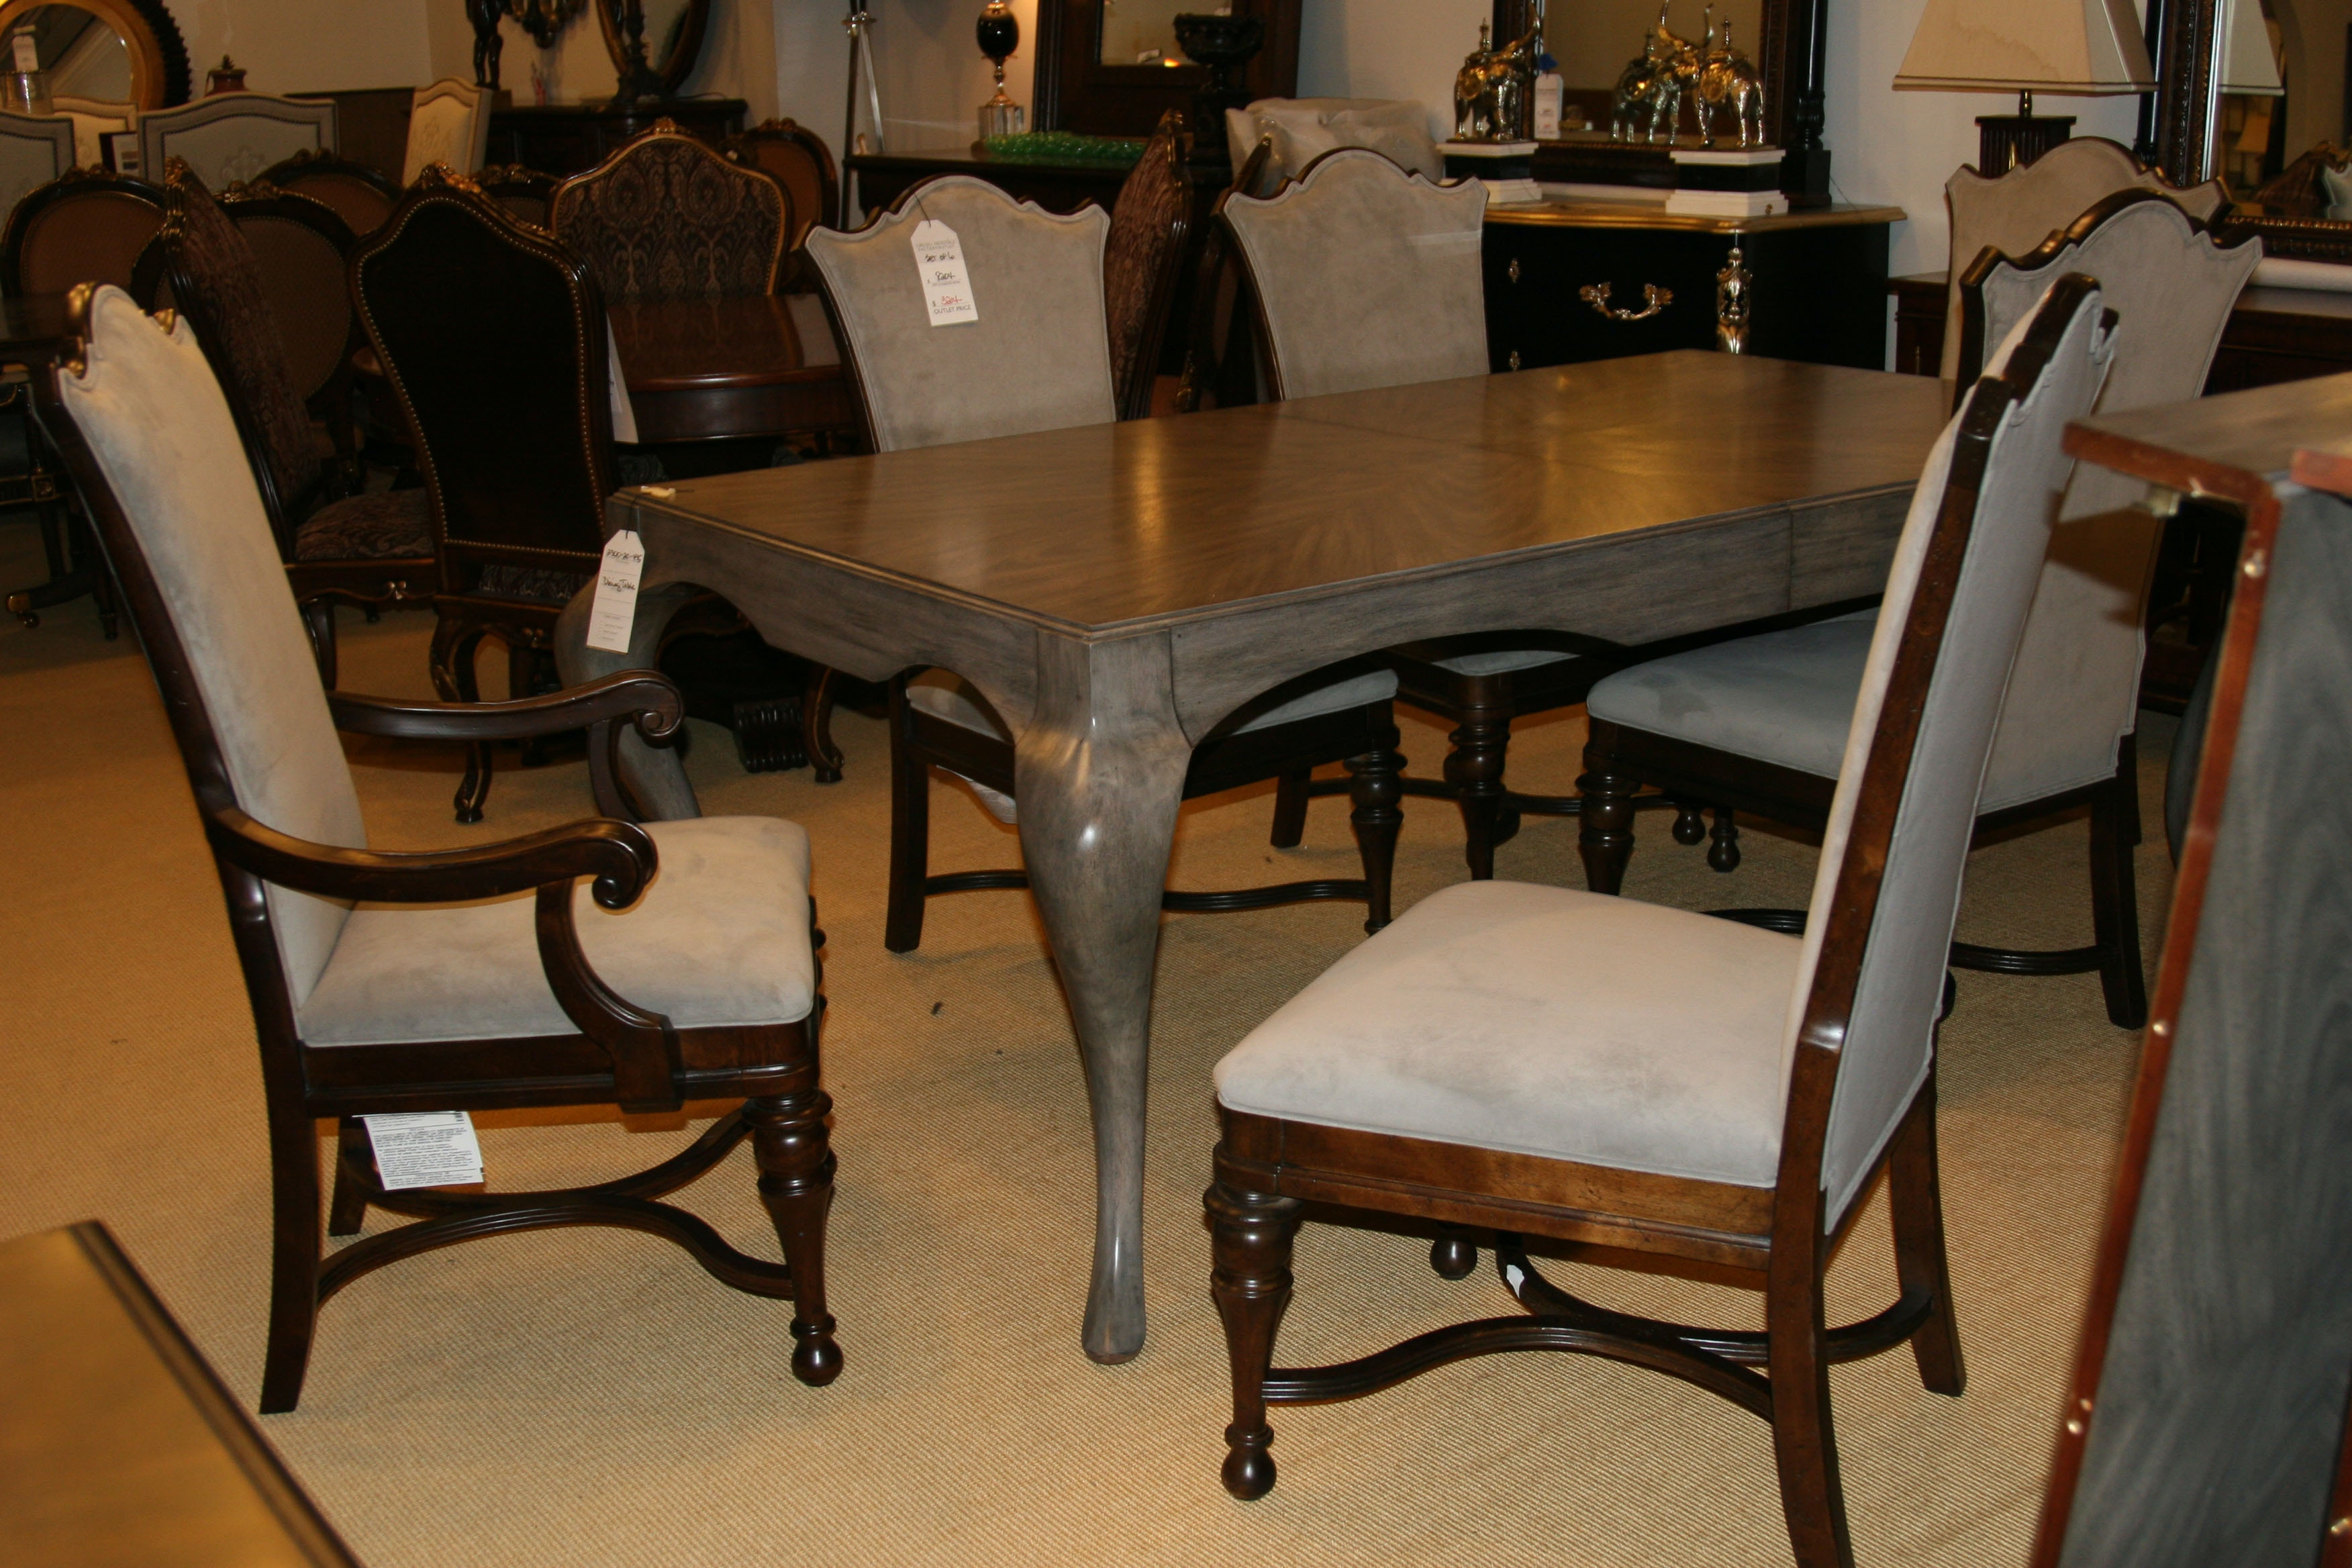 2300 20 435. Dining Table By Henredon Furniture